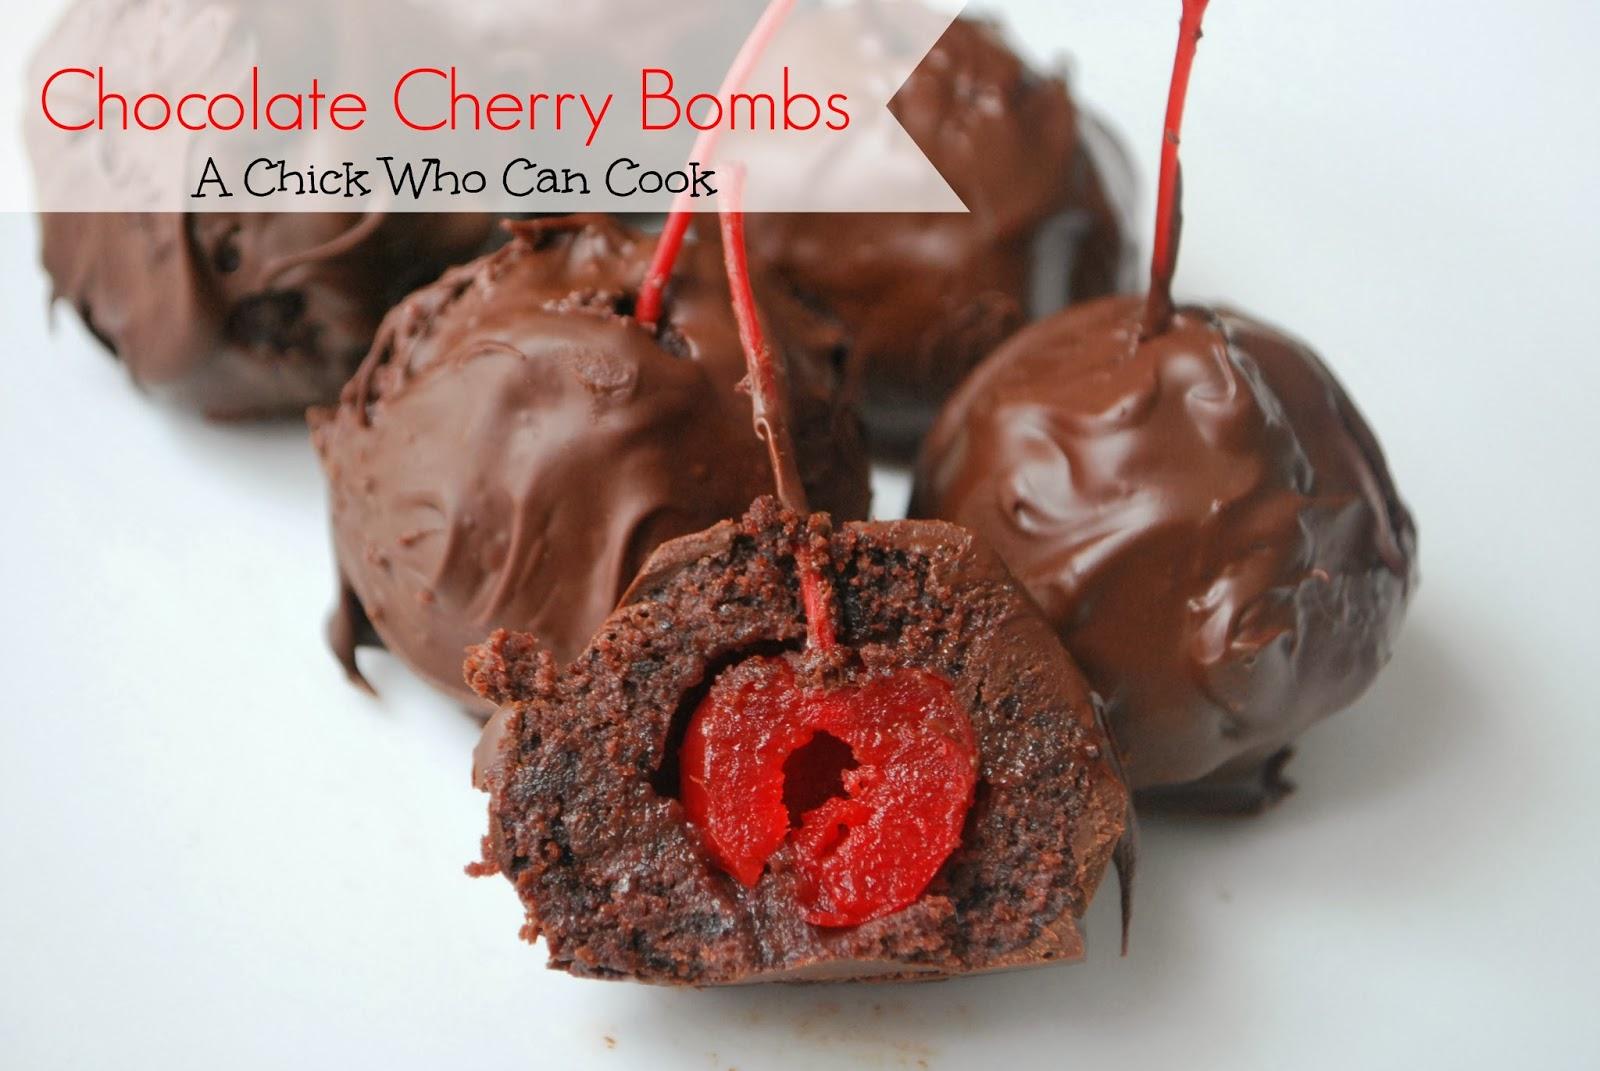 Chick Who Can Cook: Chocolate Cherry Bombs